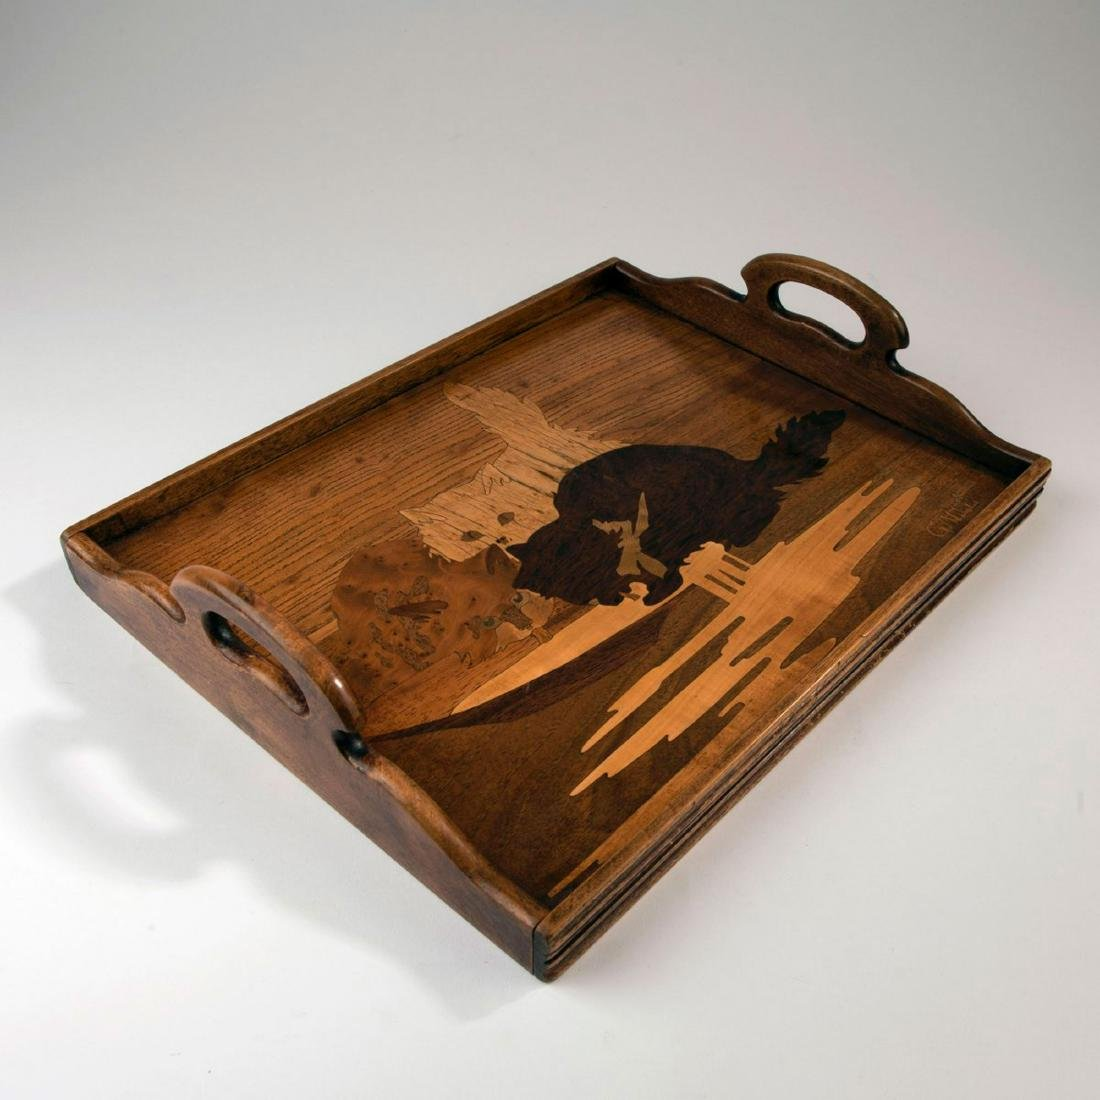 'Trois chats' tray, c. 1905 - 2